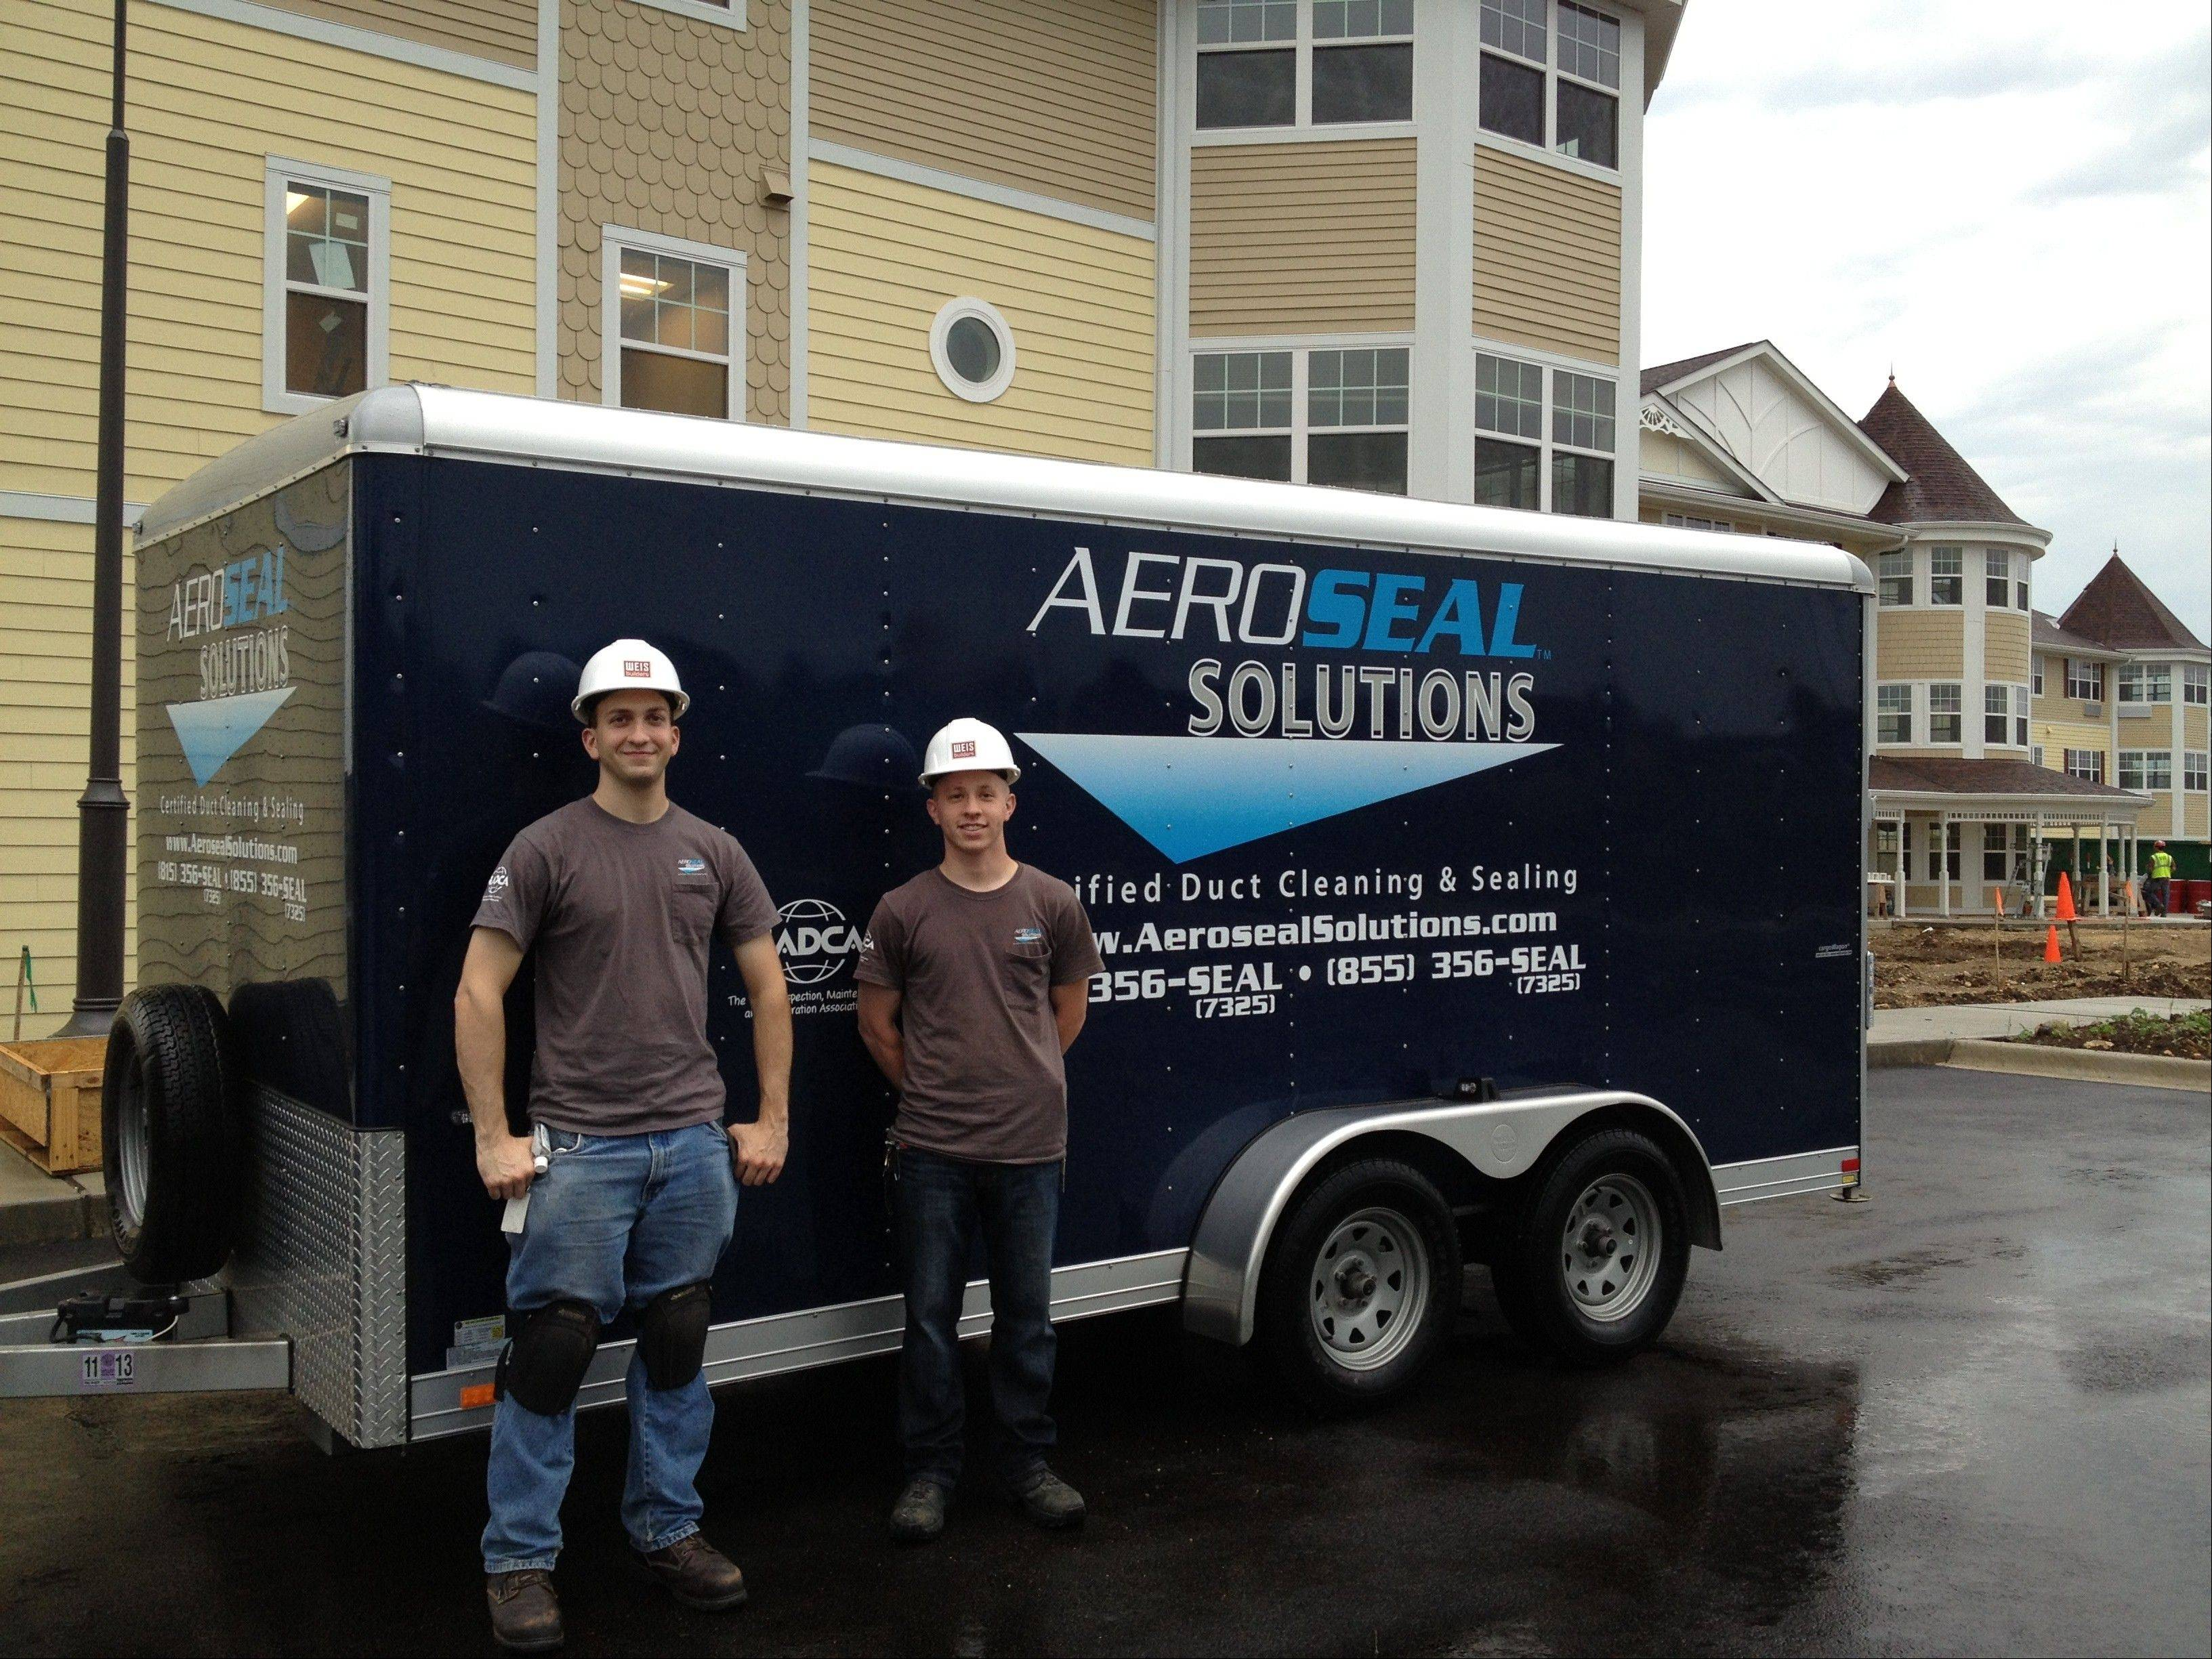 Aeroseal Solutions, based in Crystal Lake, sends trained staff to seal a home's ductwork system.